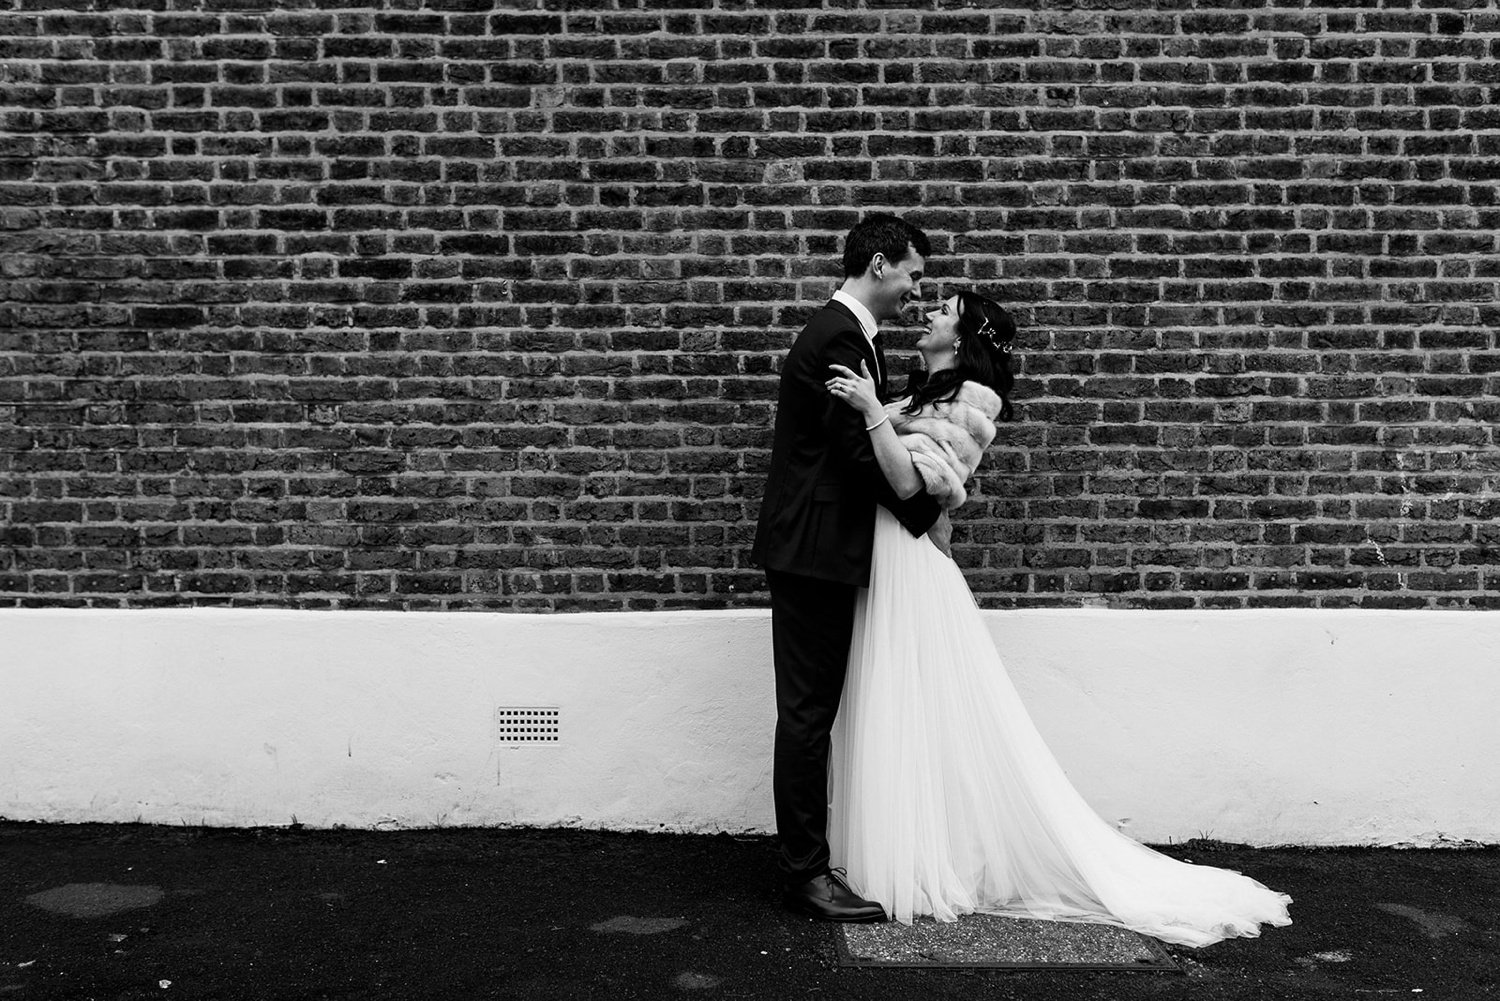 Urban couples portrait in black and white Winter Wedding The Lordship pub Dulwich